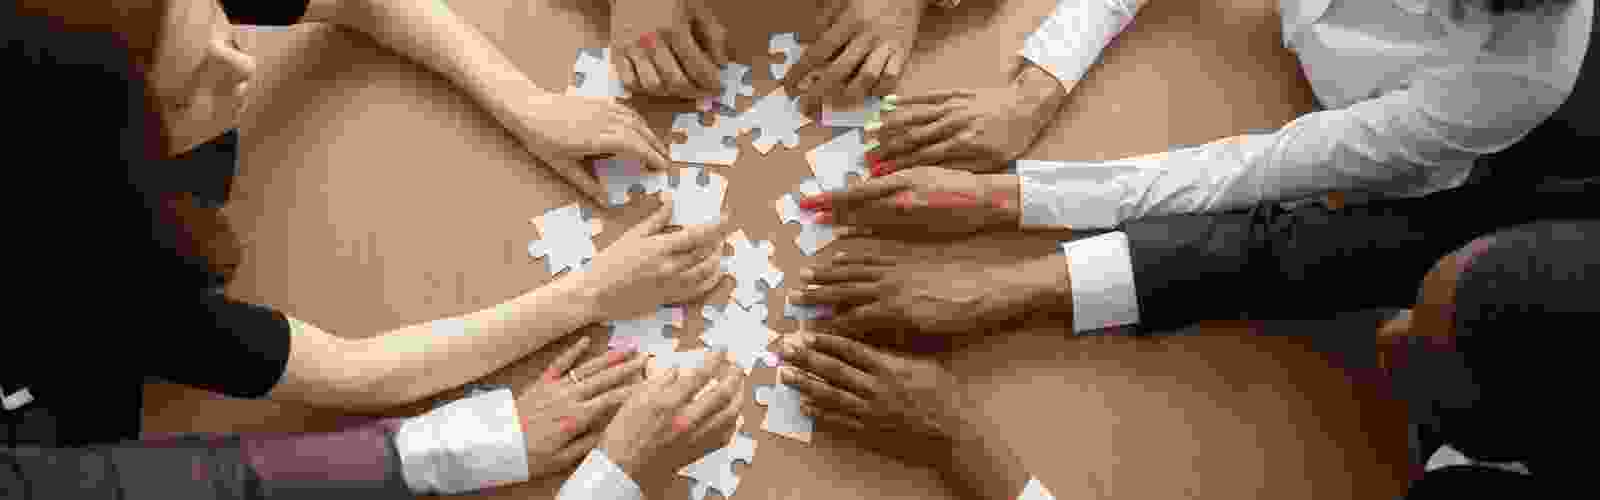 hands of people gathered around a table with jigsaw puzzle pieces